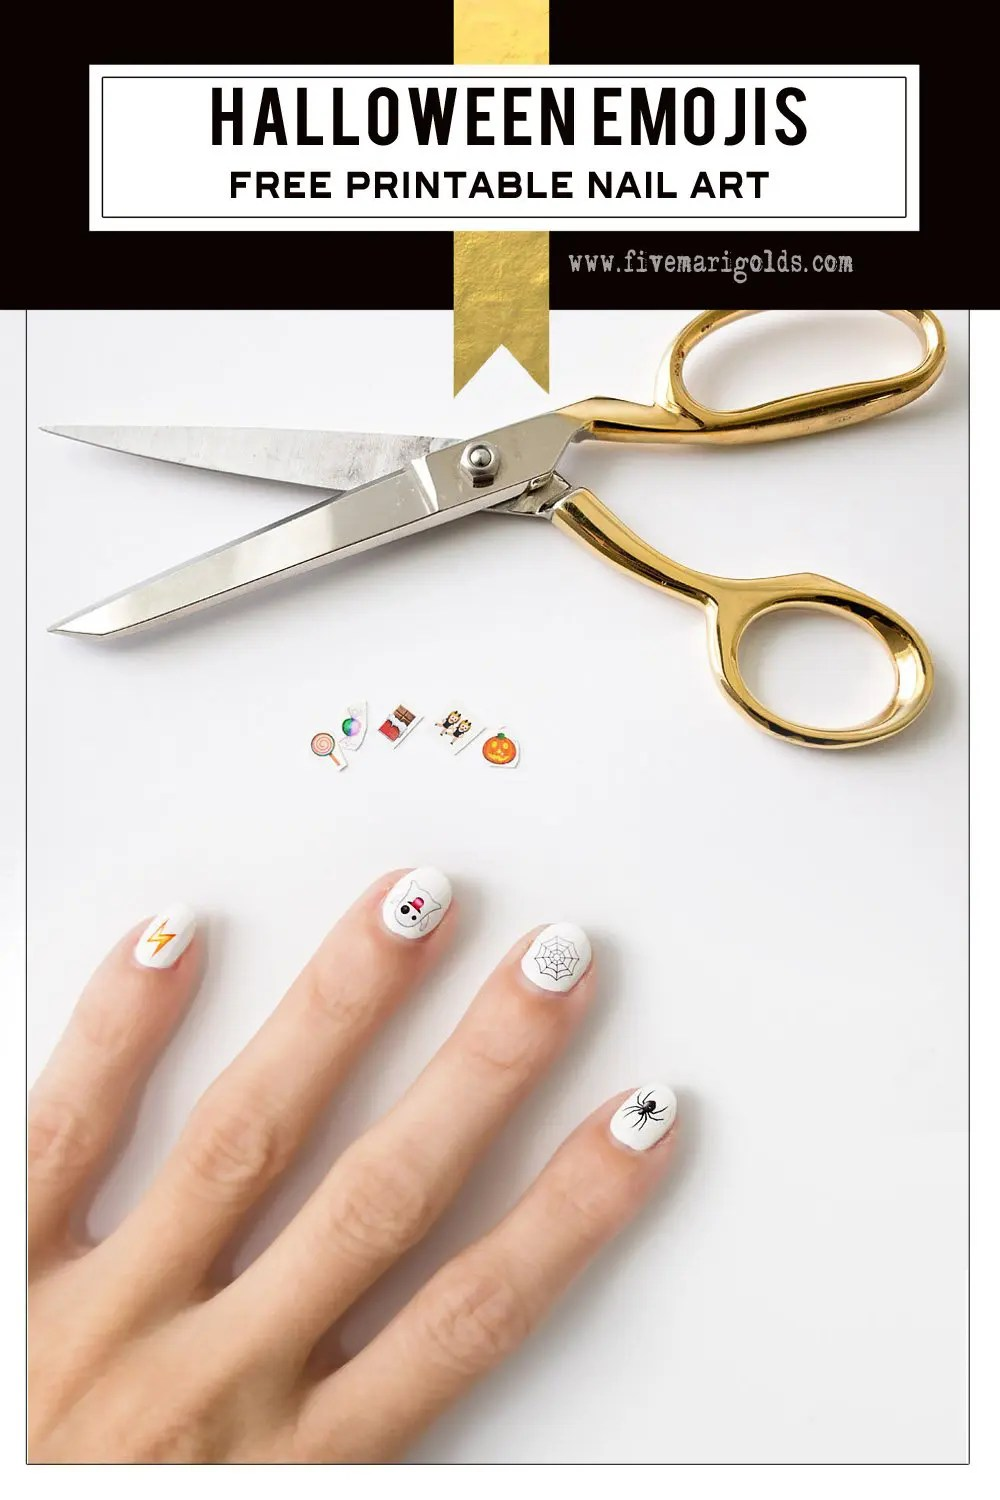 What a neat idea! Use tattoo paper to make nail art. Halloween Emoji nails.